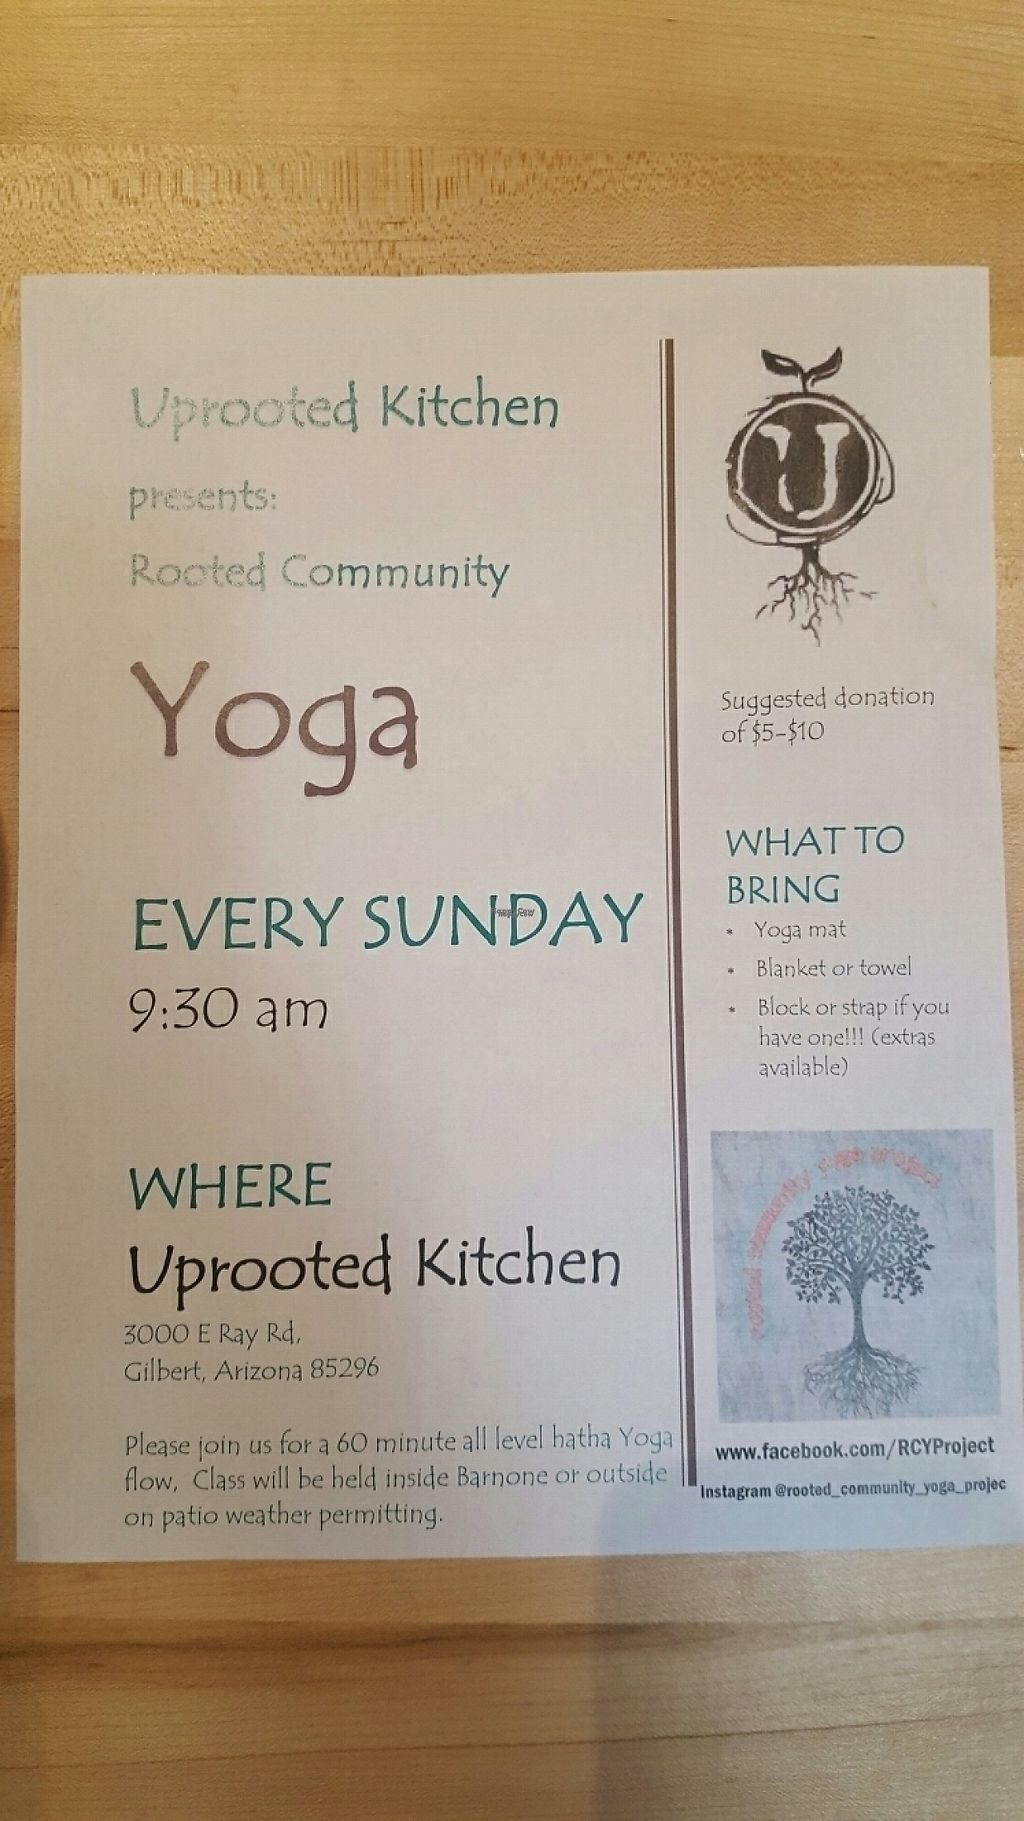 """Photo of The Uprooted Kitchen  by <a href=""""/members/profile/missmaryxjane"""">missmaryxjane</a> <br/>YOGA @ The Uprooted Kitchen on Sundays at 9:30 am <br/> February 25, 2017  - <a href='/contact/abuse/image/31151/230381'>Report</a>"""